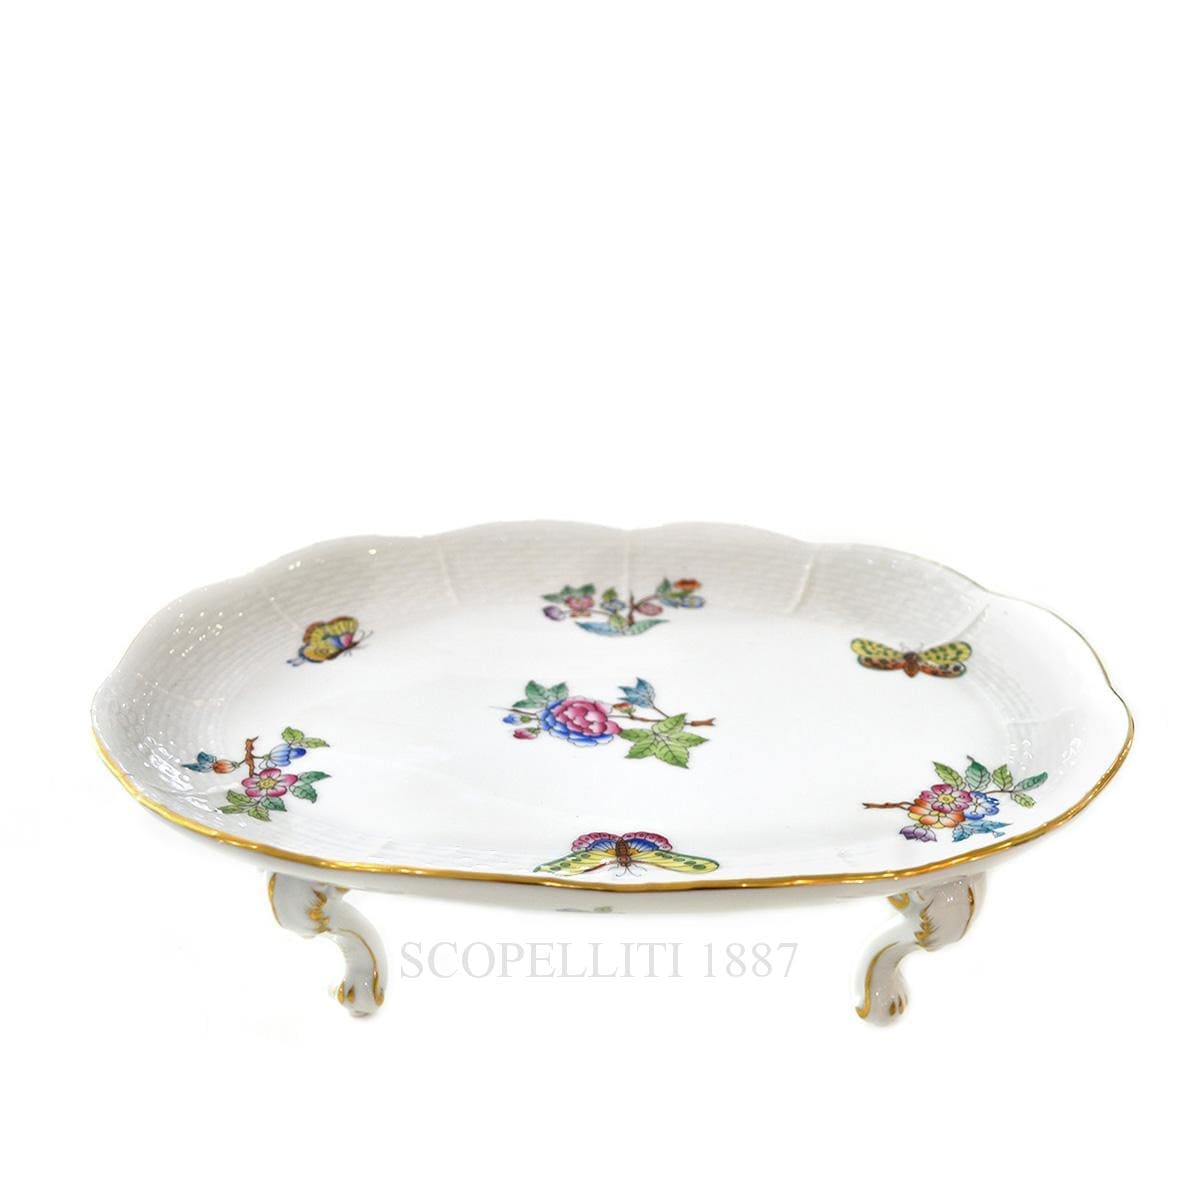 herend porcelain queen victoria footed tray